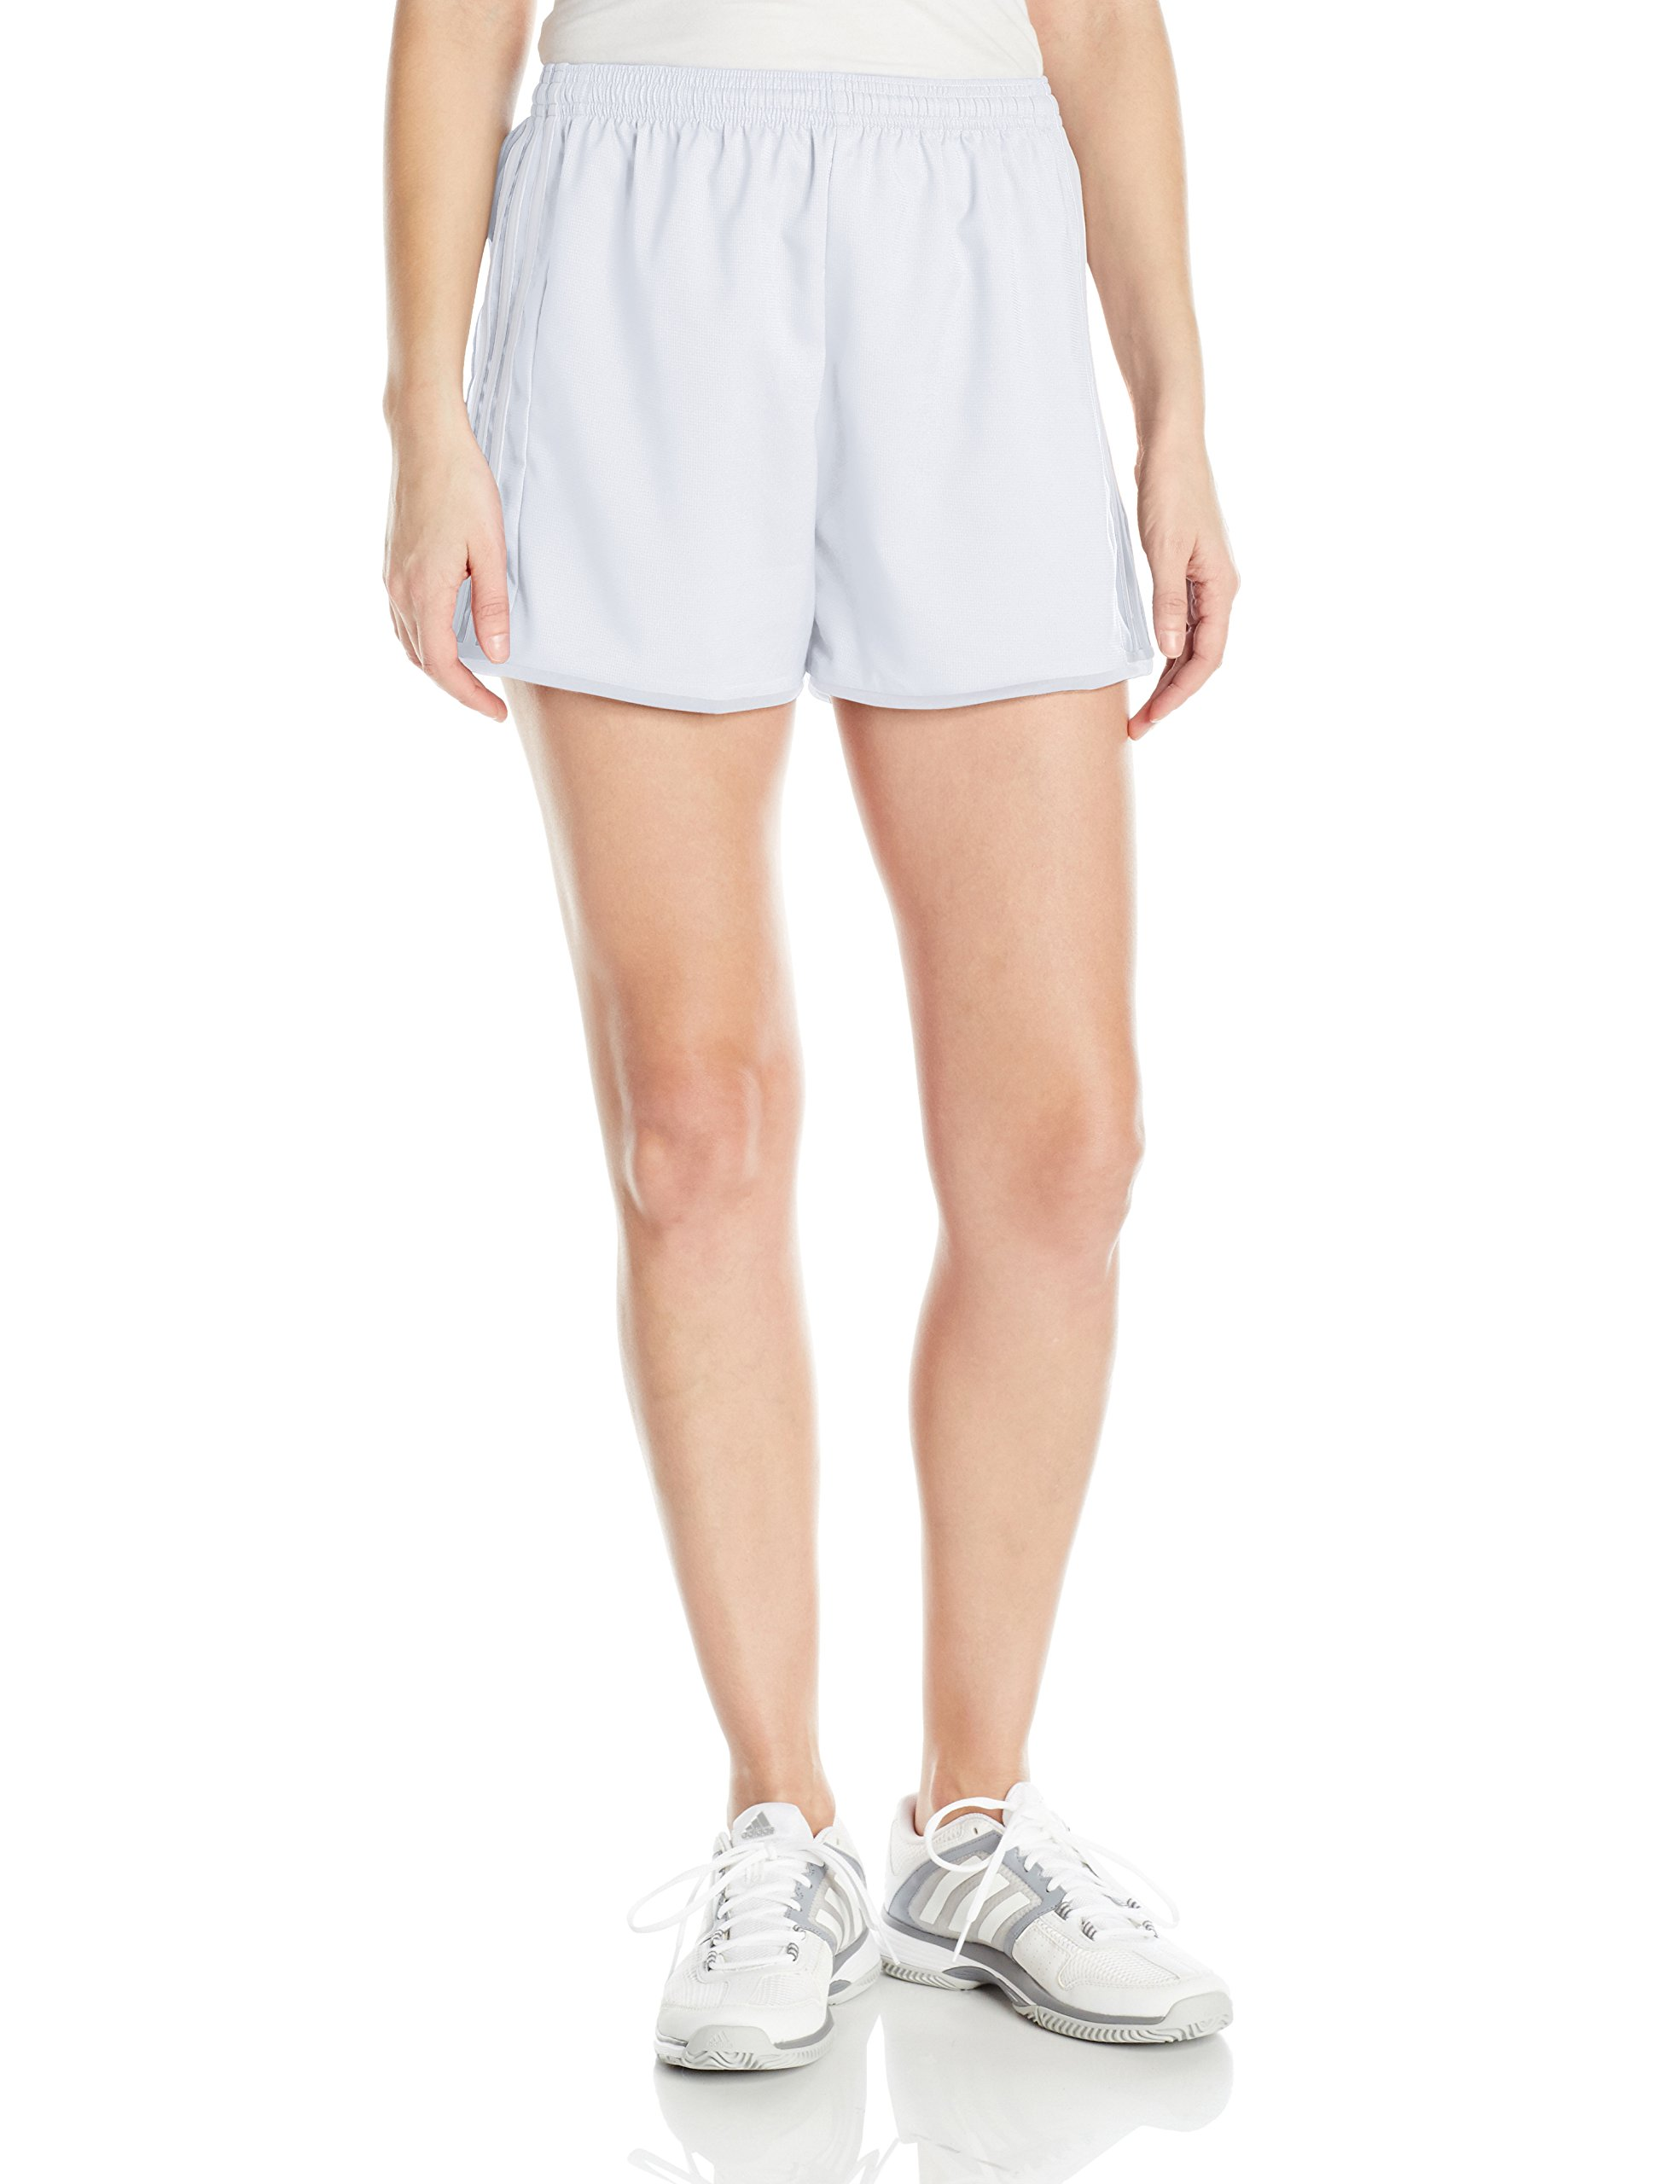 adidas Women's Soccer Condivo 16 Shorts, White/White, Medium by adidas